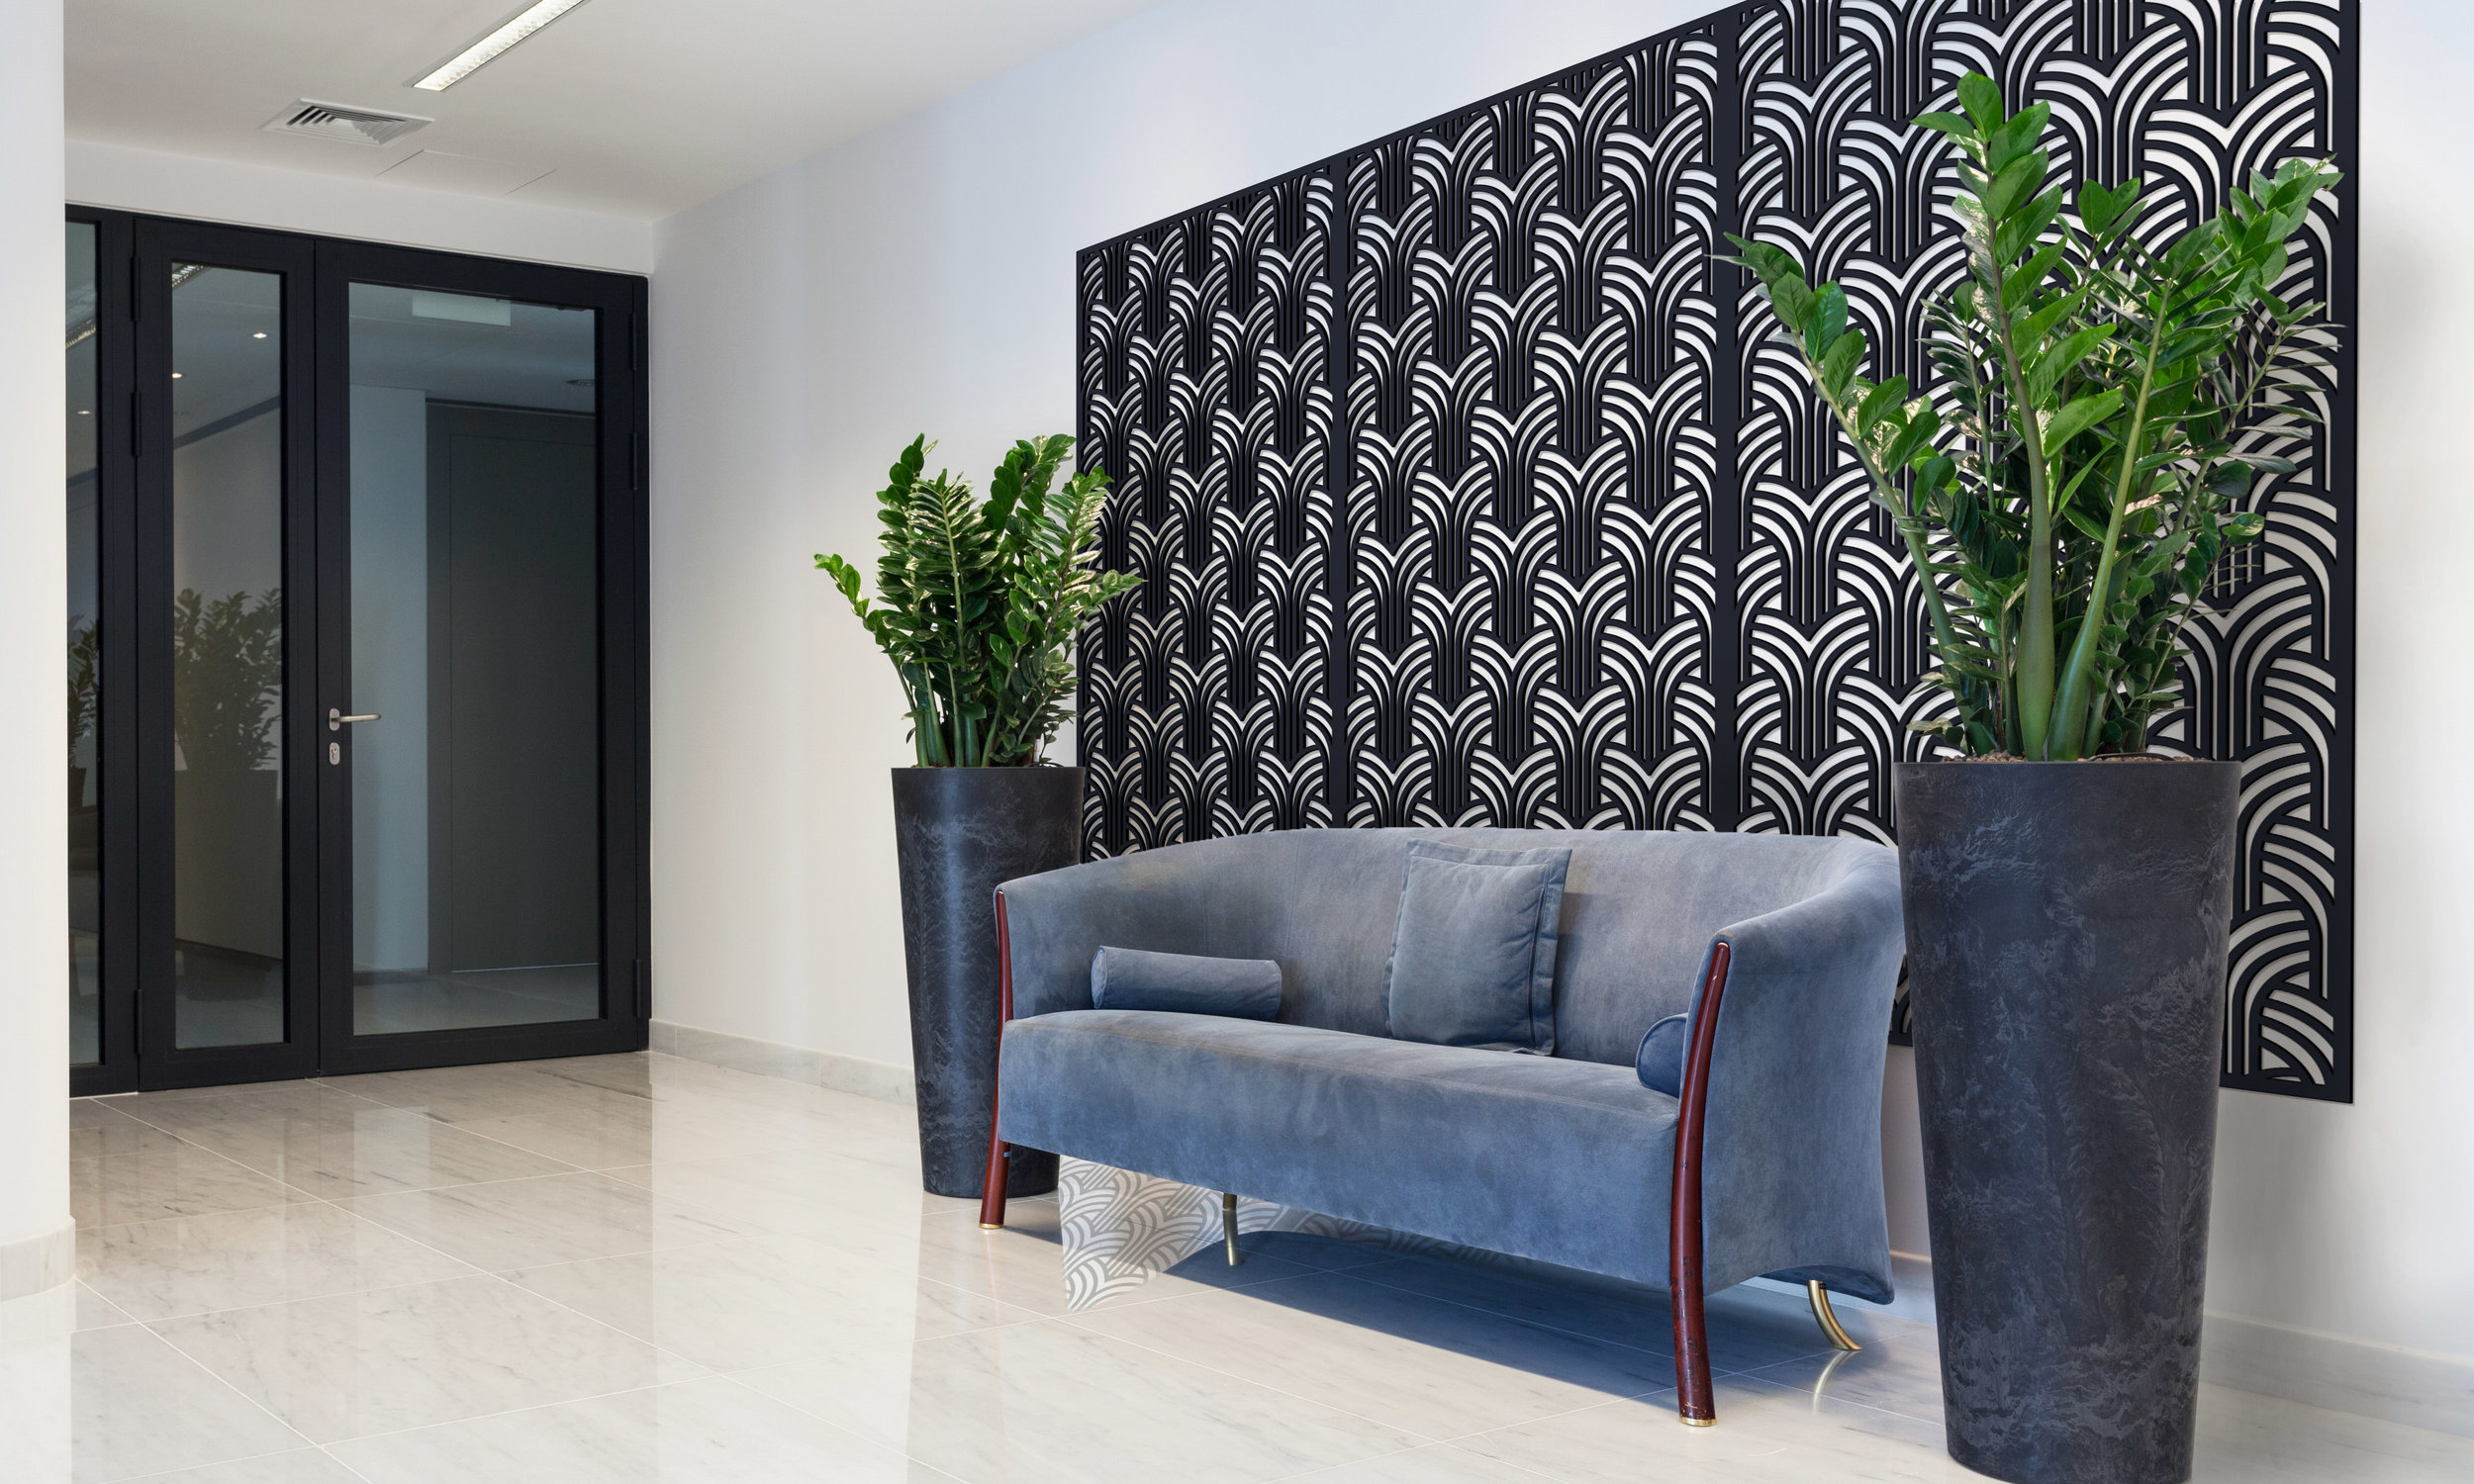 Installation Rendering B   Gatsby Arches decorative office wall panel - painted